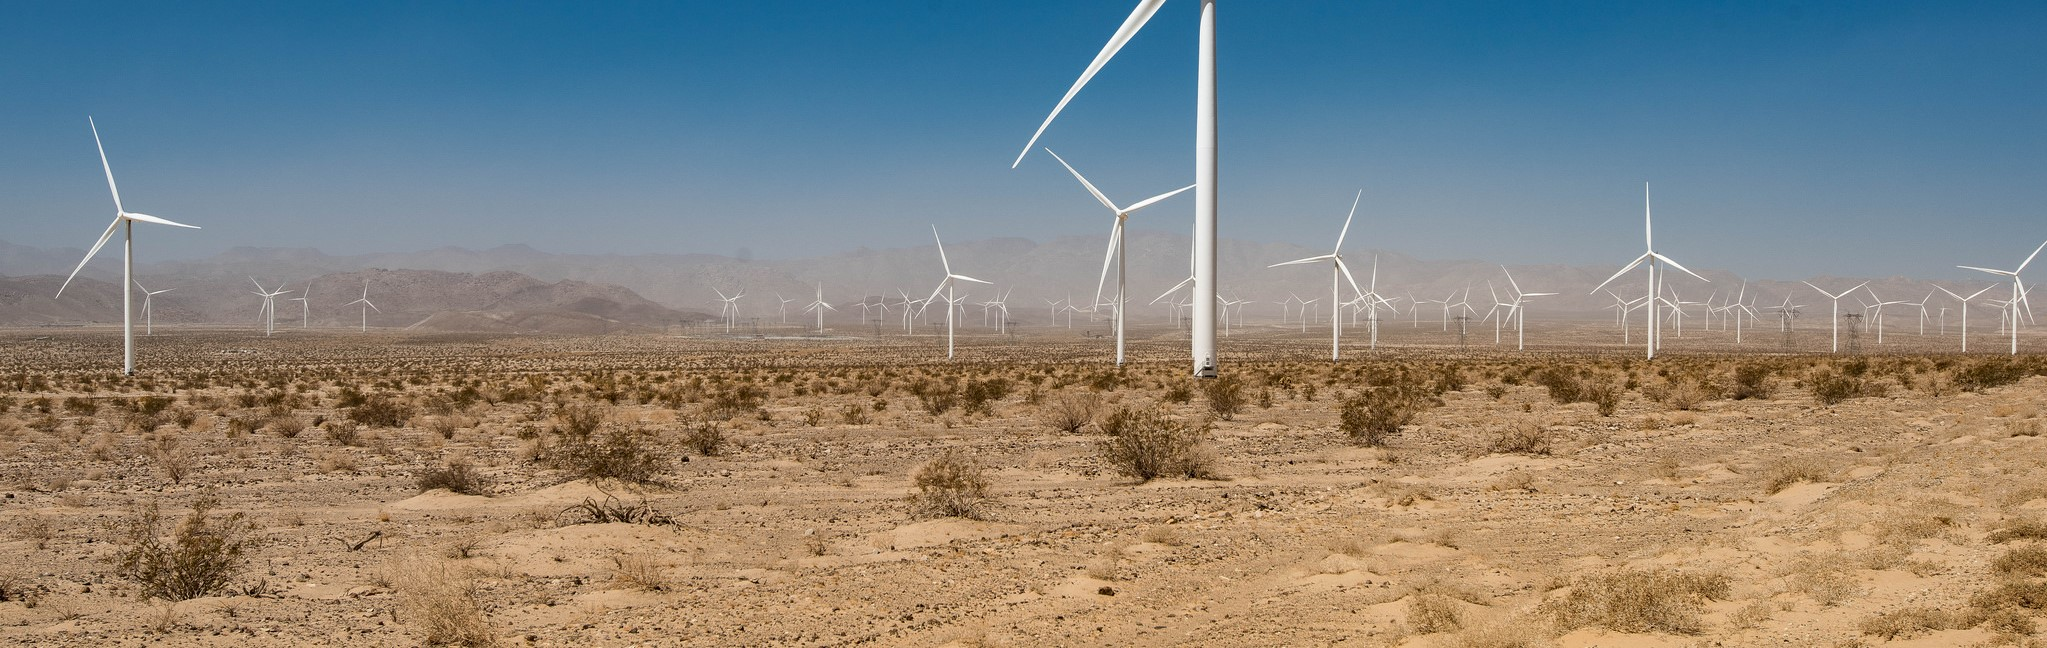 The Ocotillo wind farm in California, July 2016 (Photo: Daxis/Flickr)